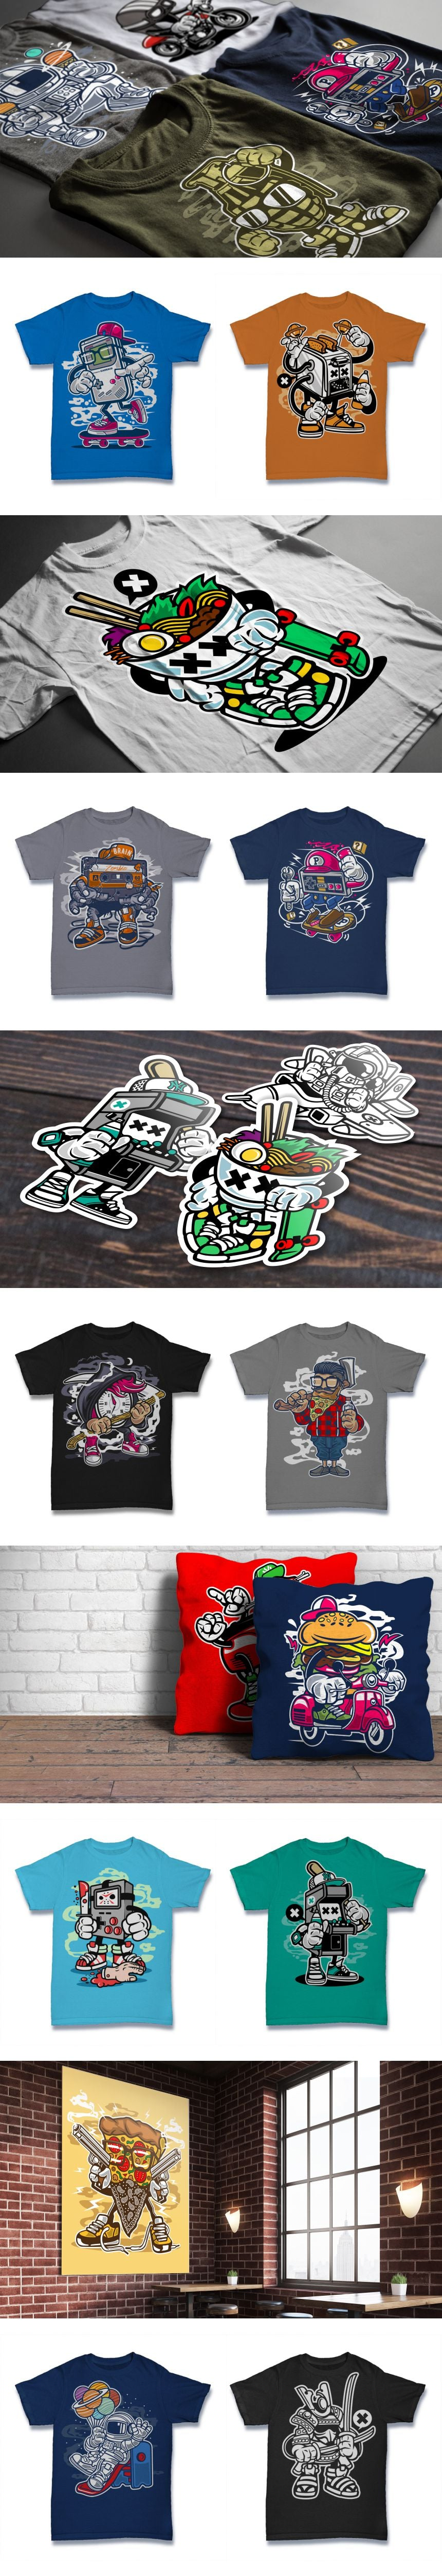 101 T-shirt Designs with cartoon concept